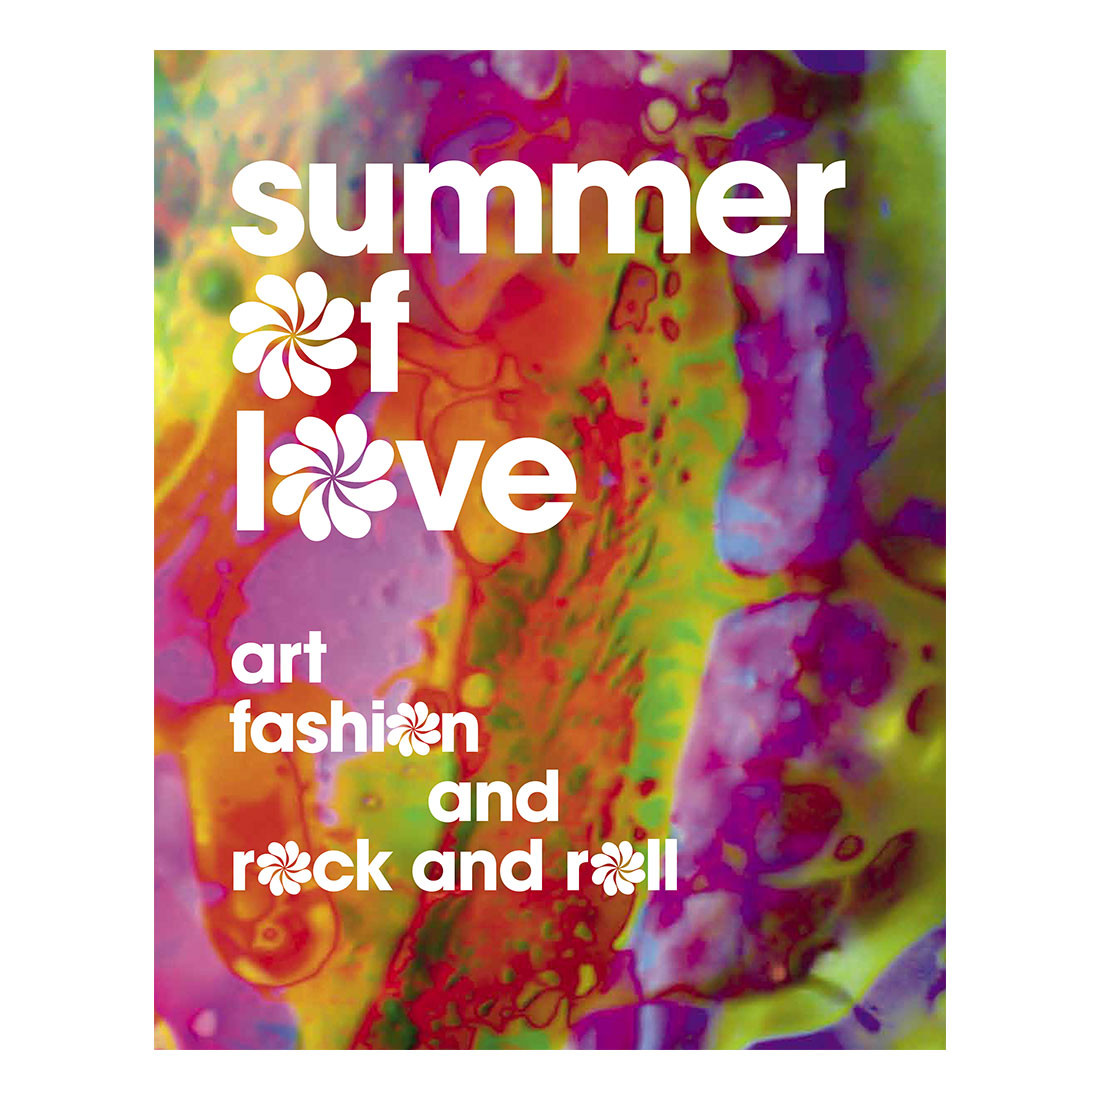 summer of love 2